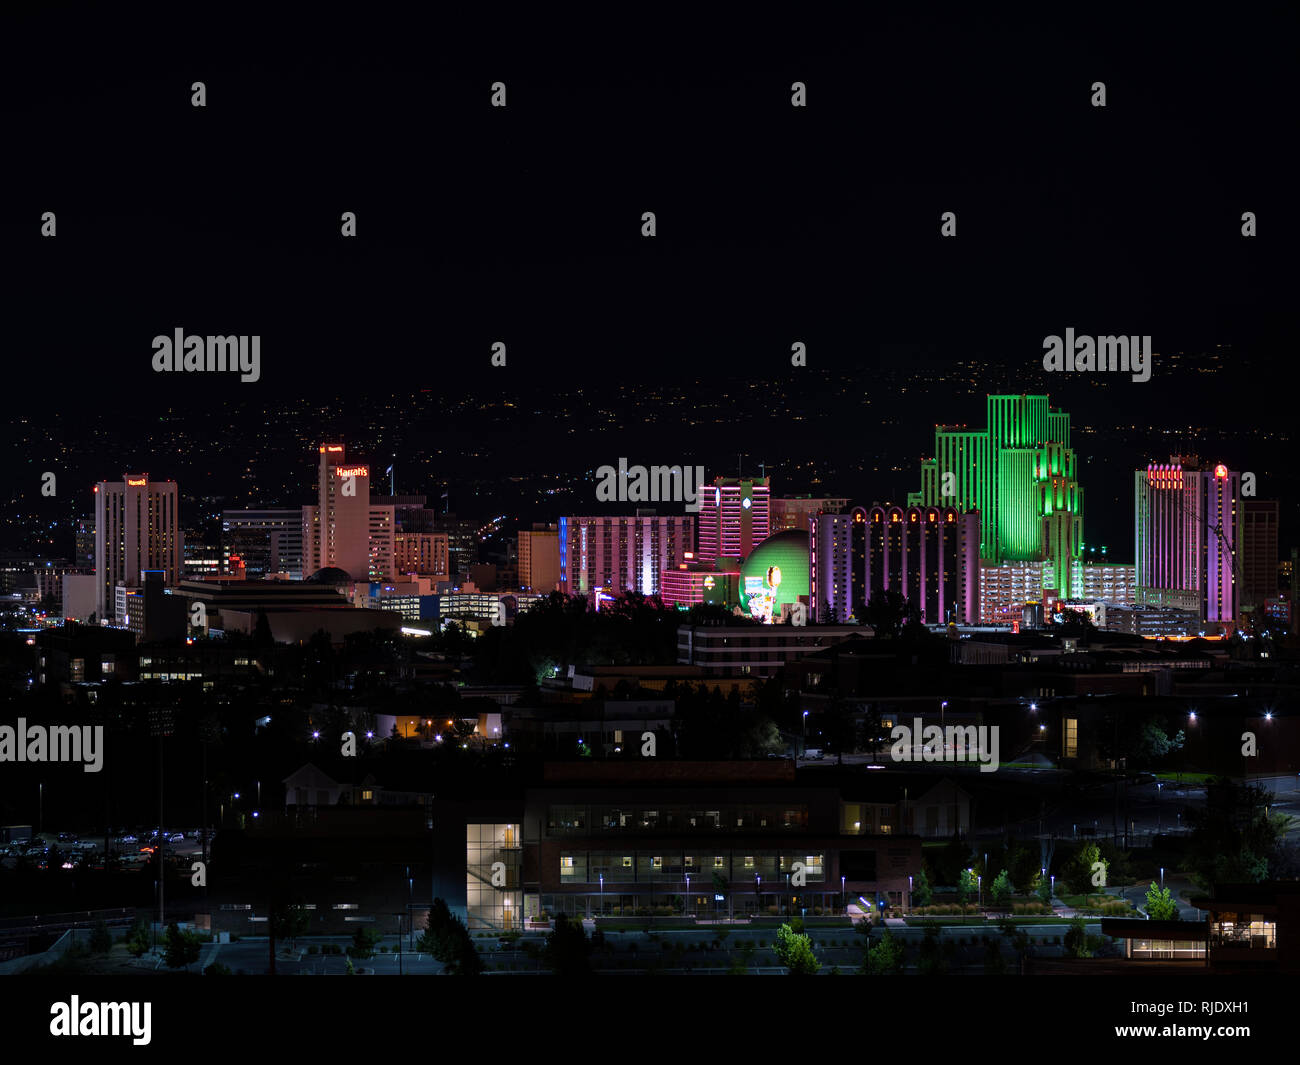 City Of Reno cityscape at night with multicolored hotels and casinos. - Stock Image